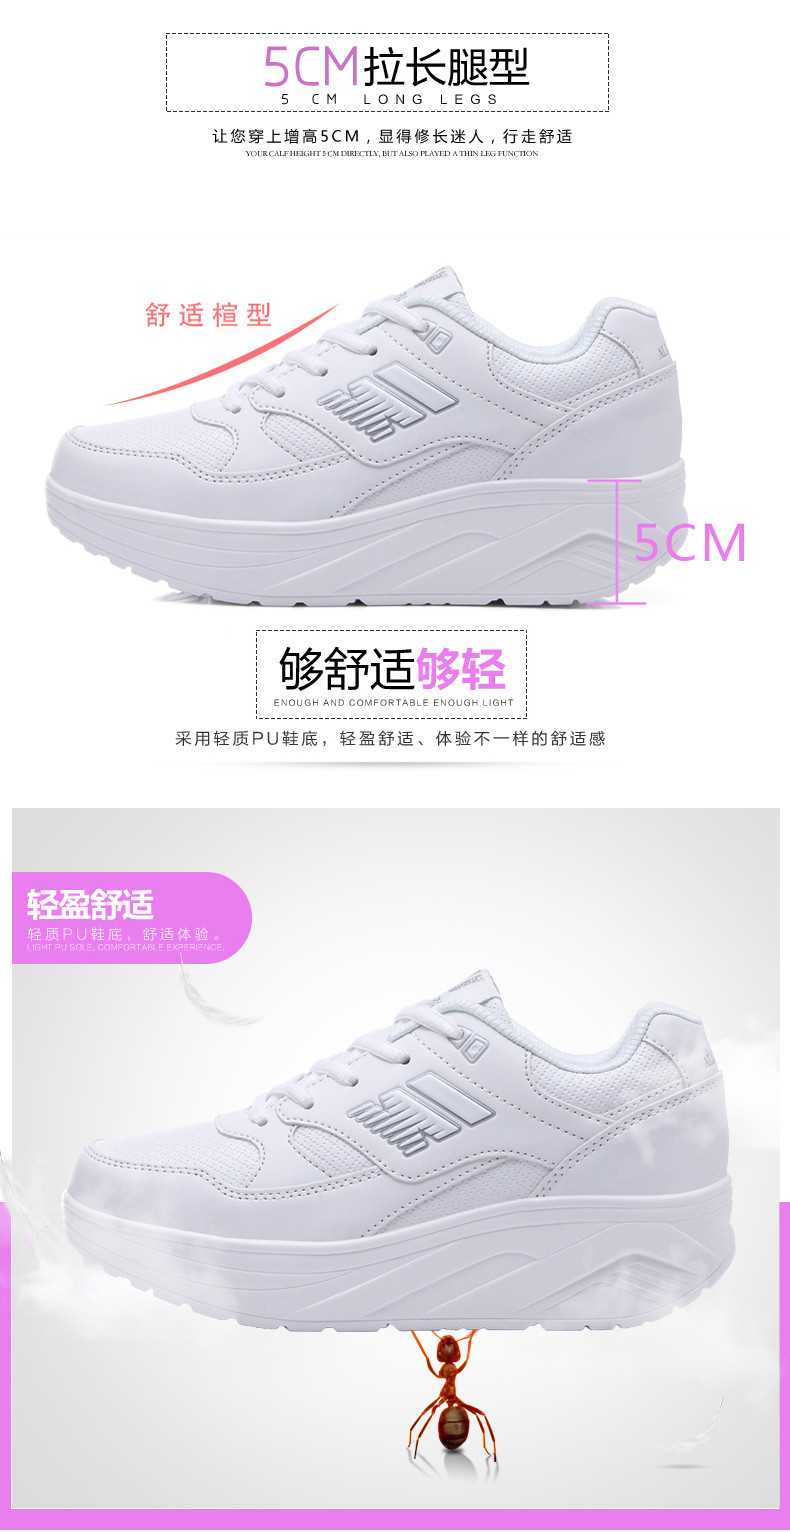 Autumn winter outdoor Girls Sneakers Platform Running Shoes for Women Sneakers Sports Shoes White Sneakers 2